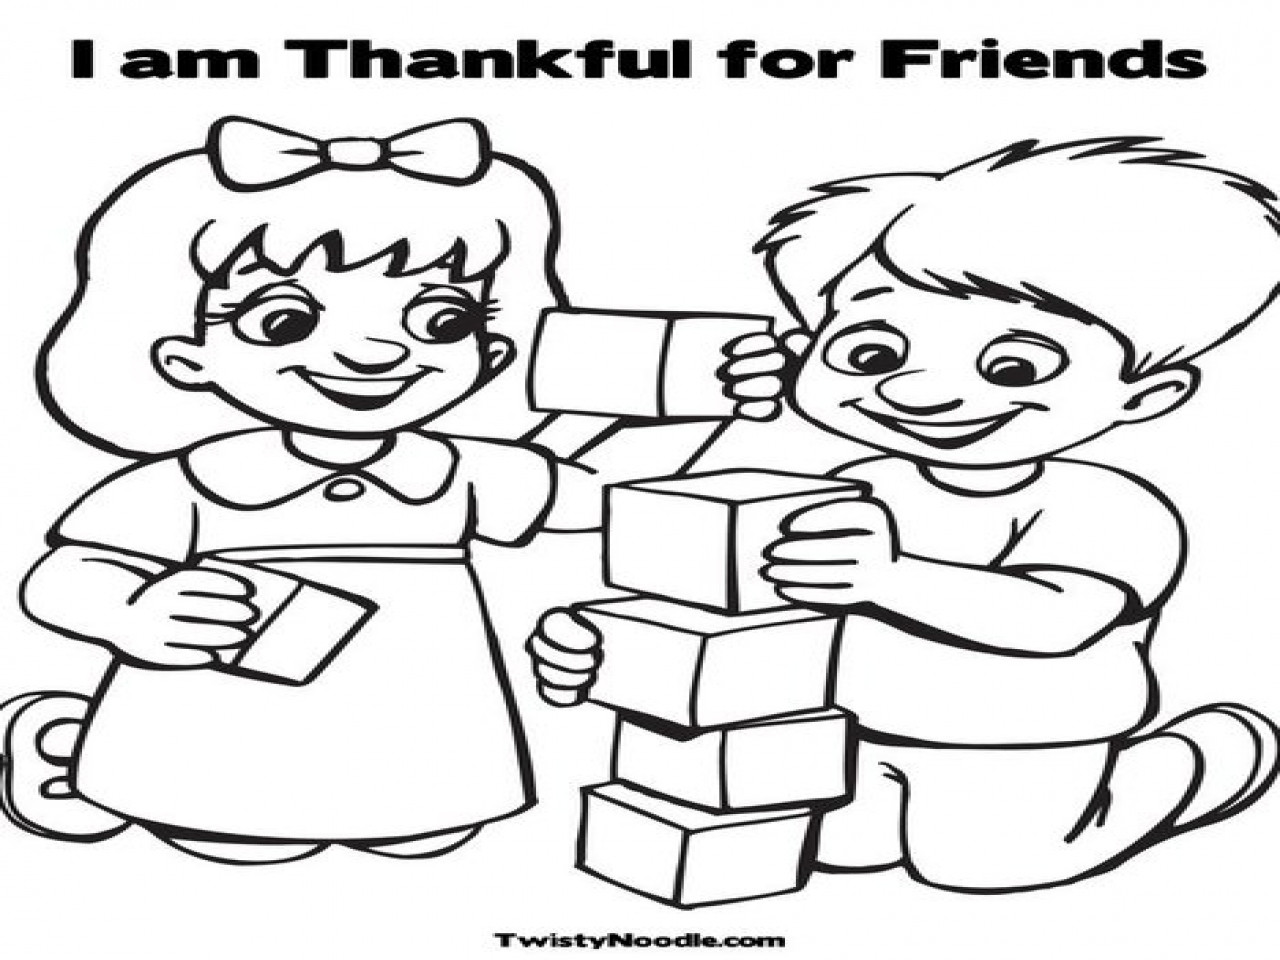 Friendship Coloring Pages For Girls  Good Friends Coloring Friendship Pages Image Search